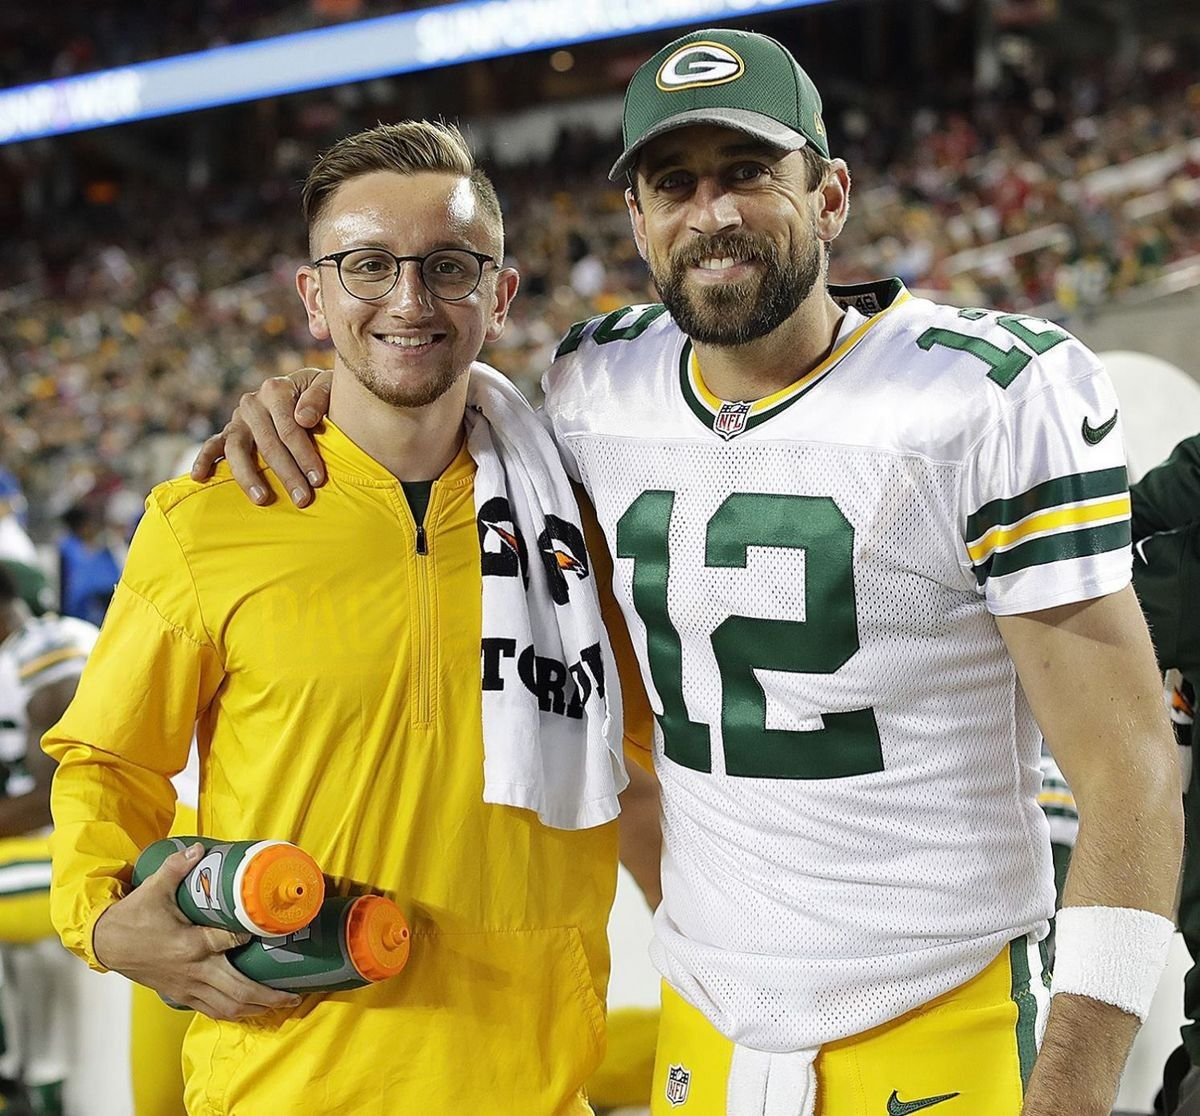 Pin By Dottie Olig On Aaron Rodgers Aaron Rogers Aaron Rodgers Go Packers